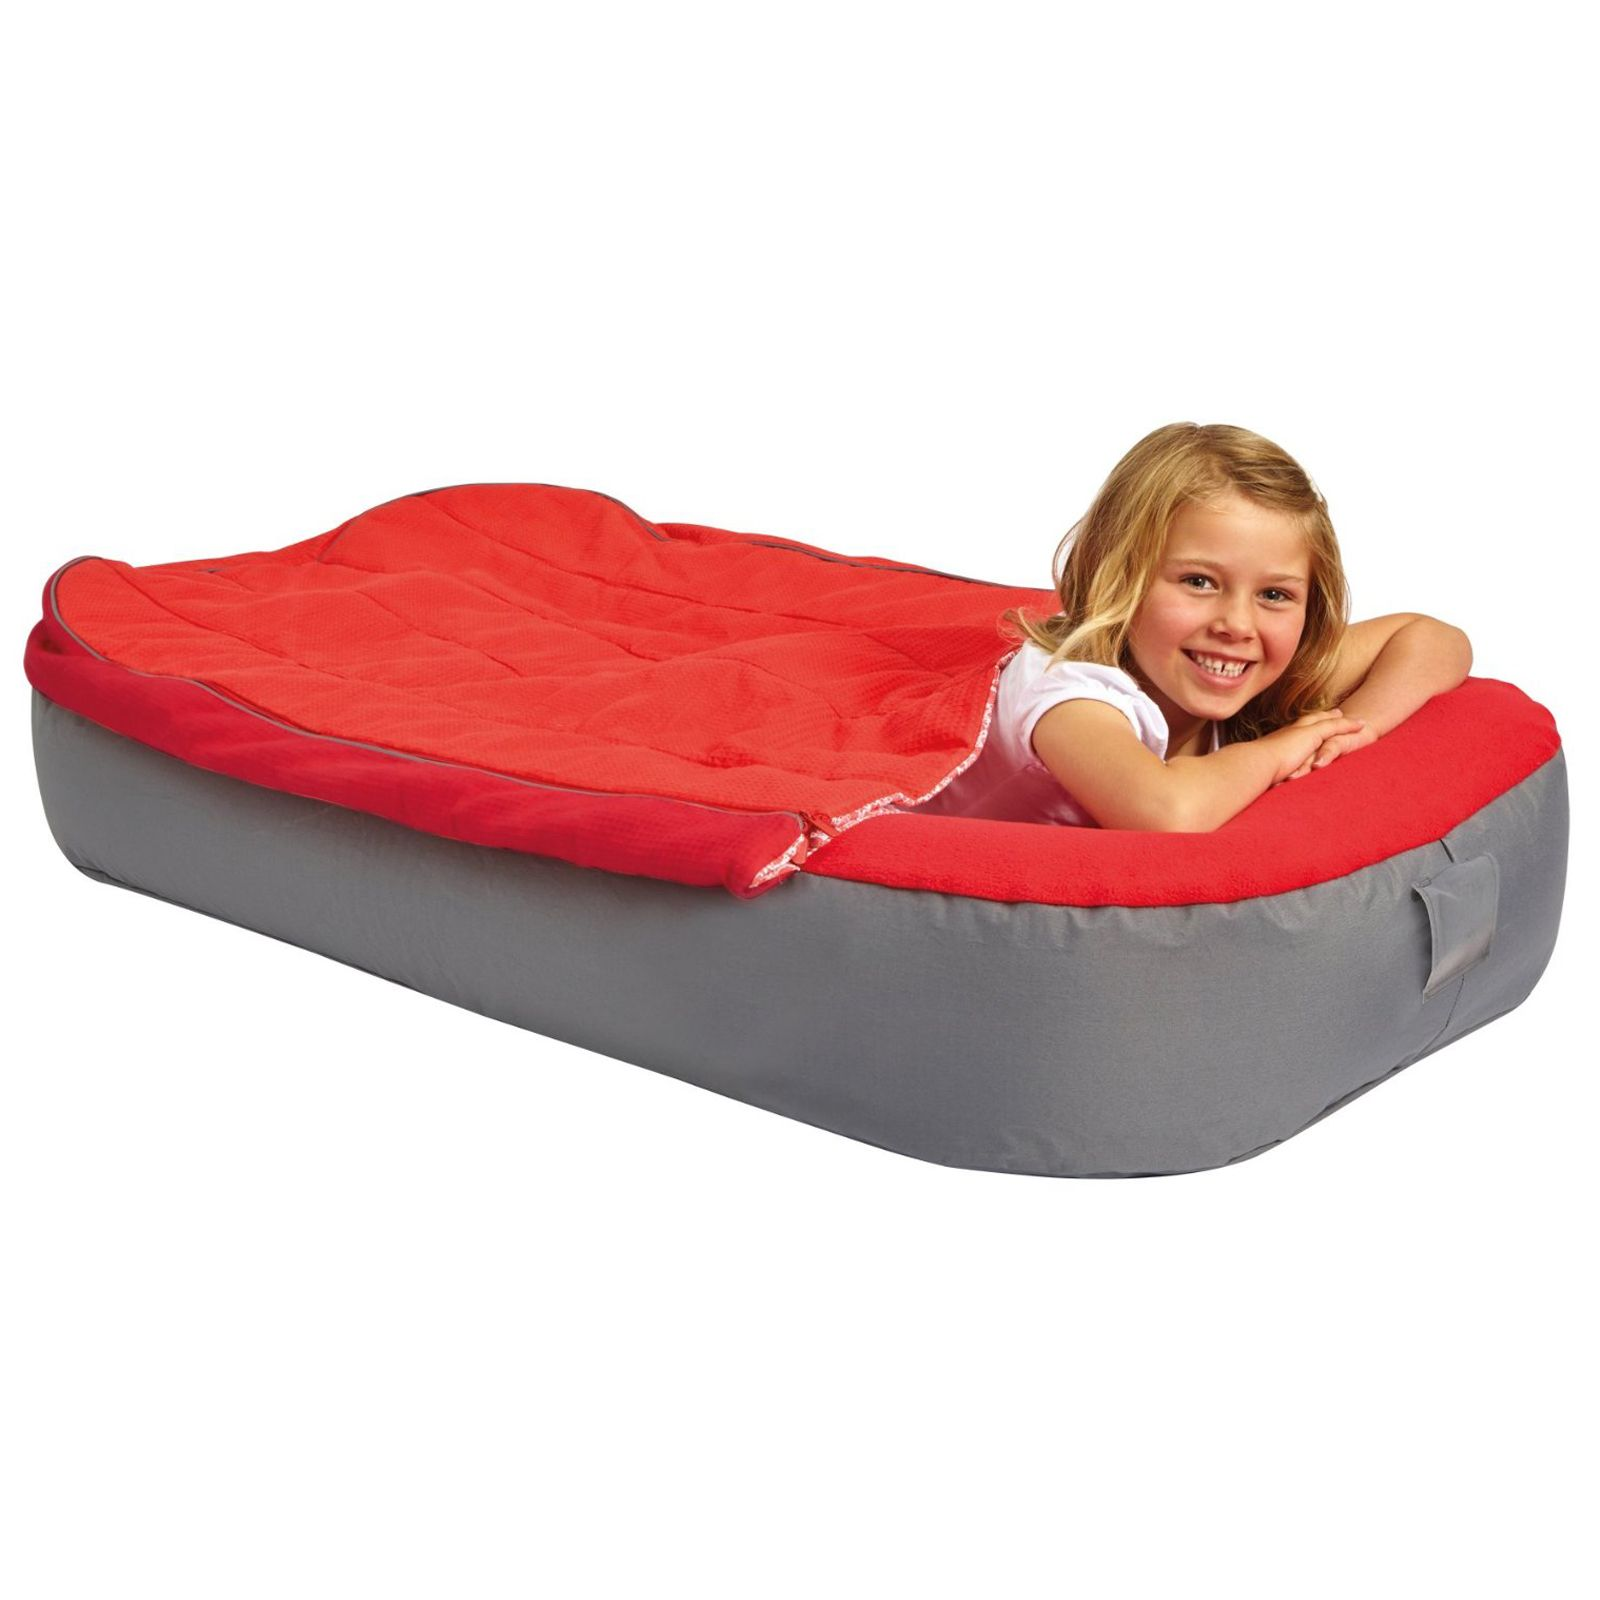 Inflatable Beds Argos: WORLDS APART DELUXE Junior Ready Bed With Pump Inflatable